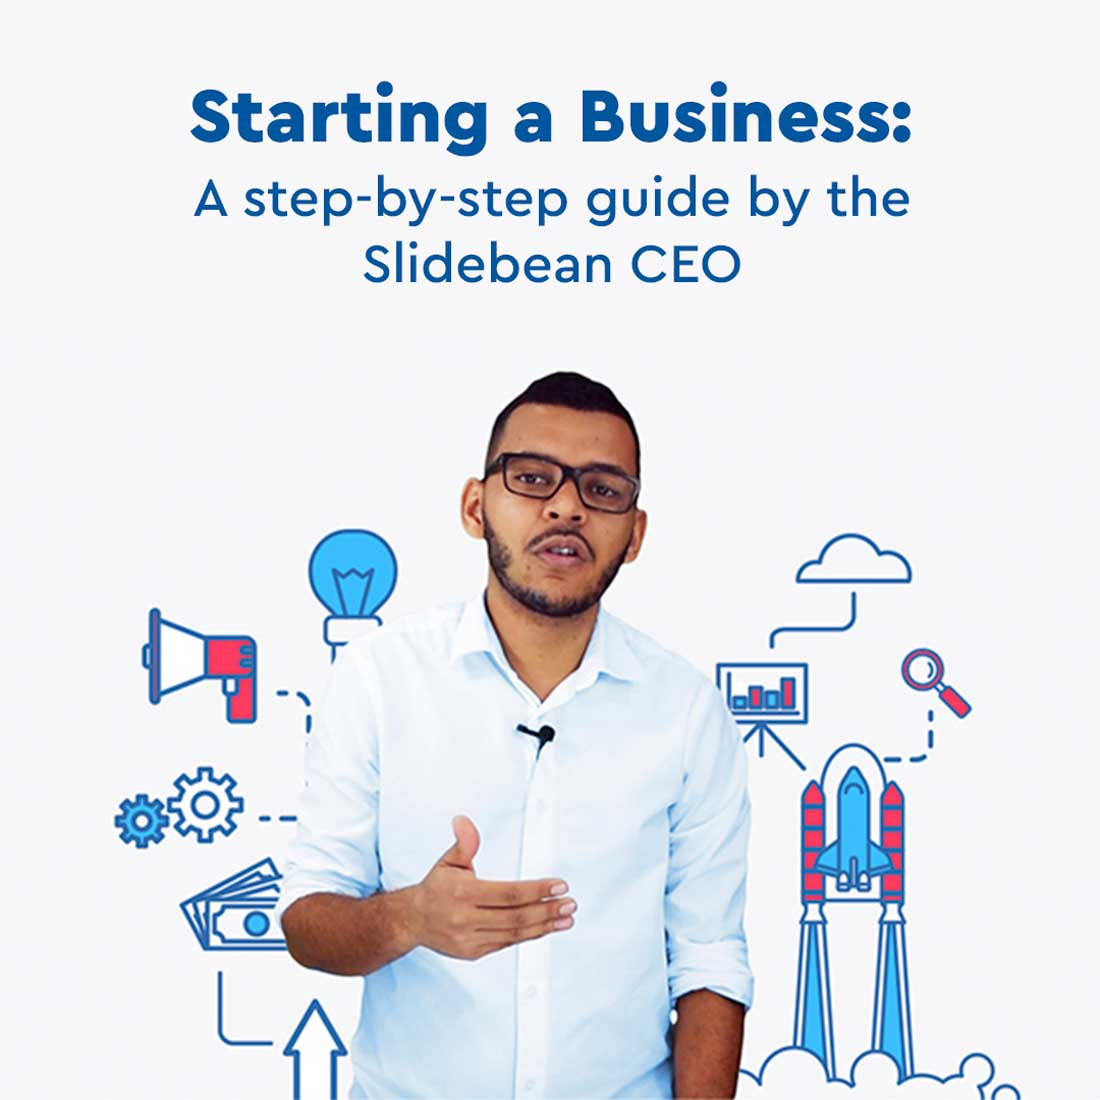 Image contains step by step to start a business